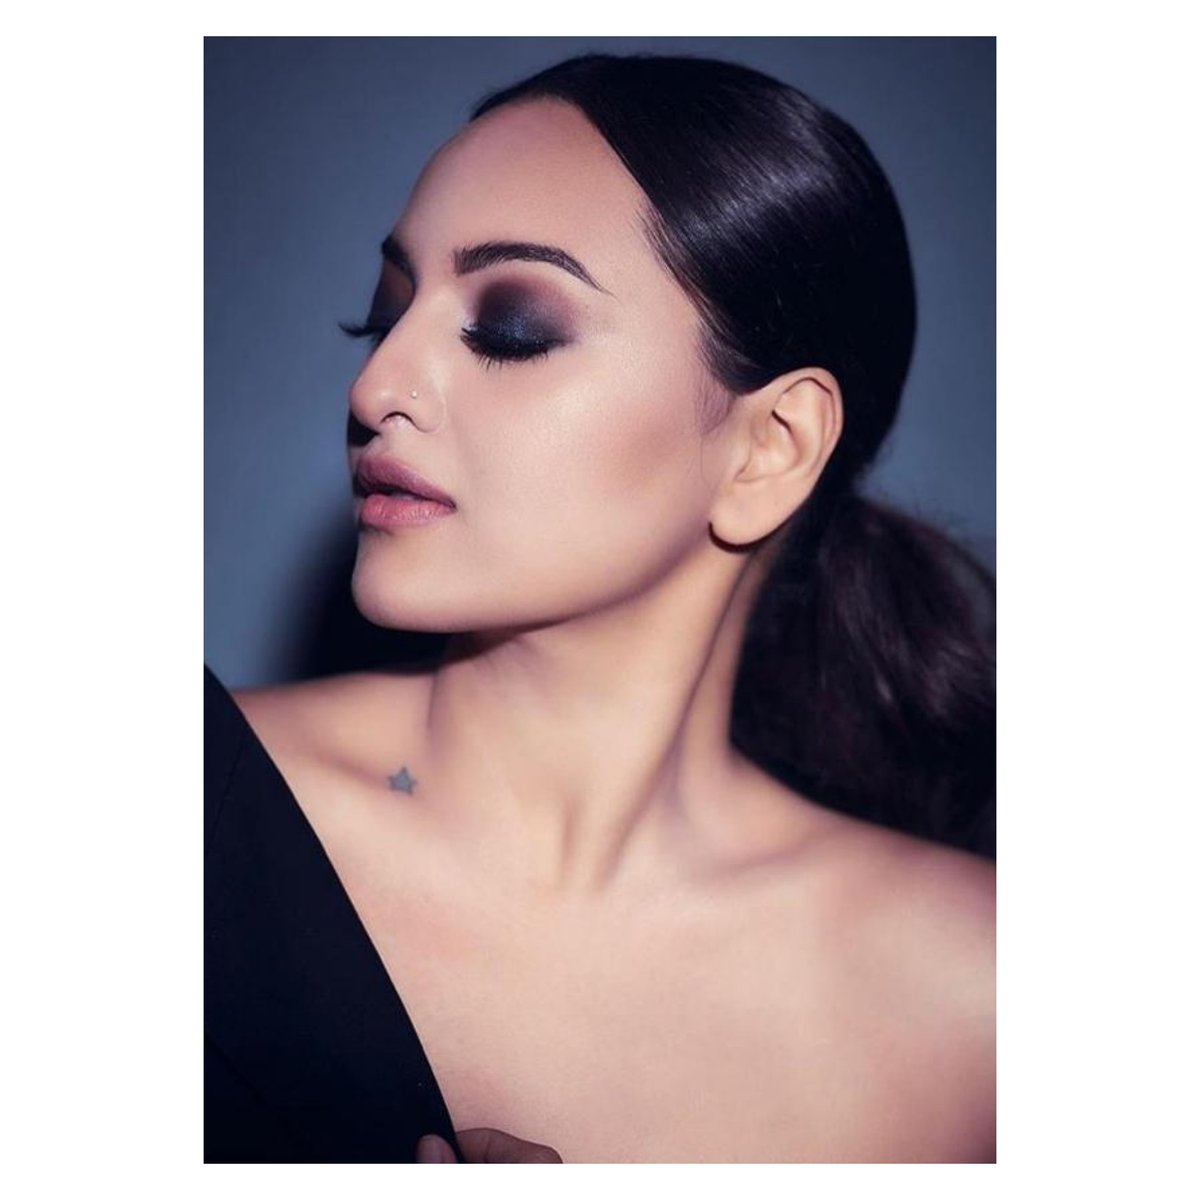 Oh! Oh! Oh! Those smoky eyes are electric🔥🔥 #savleenmanchanda And the capacious mascara and those impeccably authored brows, giving the whole look a winsome charm literally took our hearts out💕 @sonakshisinha @strut247x  #eyebrows #hudabeautyeyeshadow #glittermakeup #strut24x7